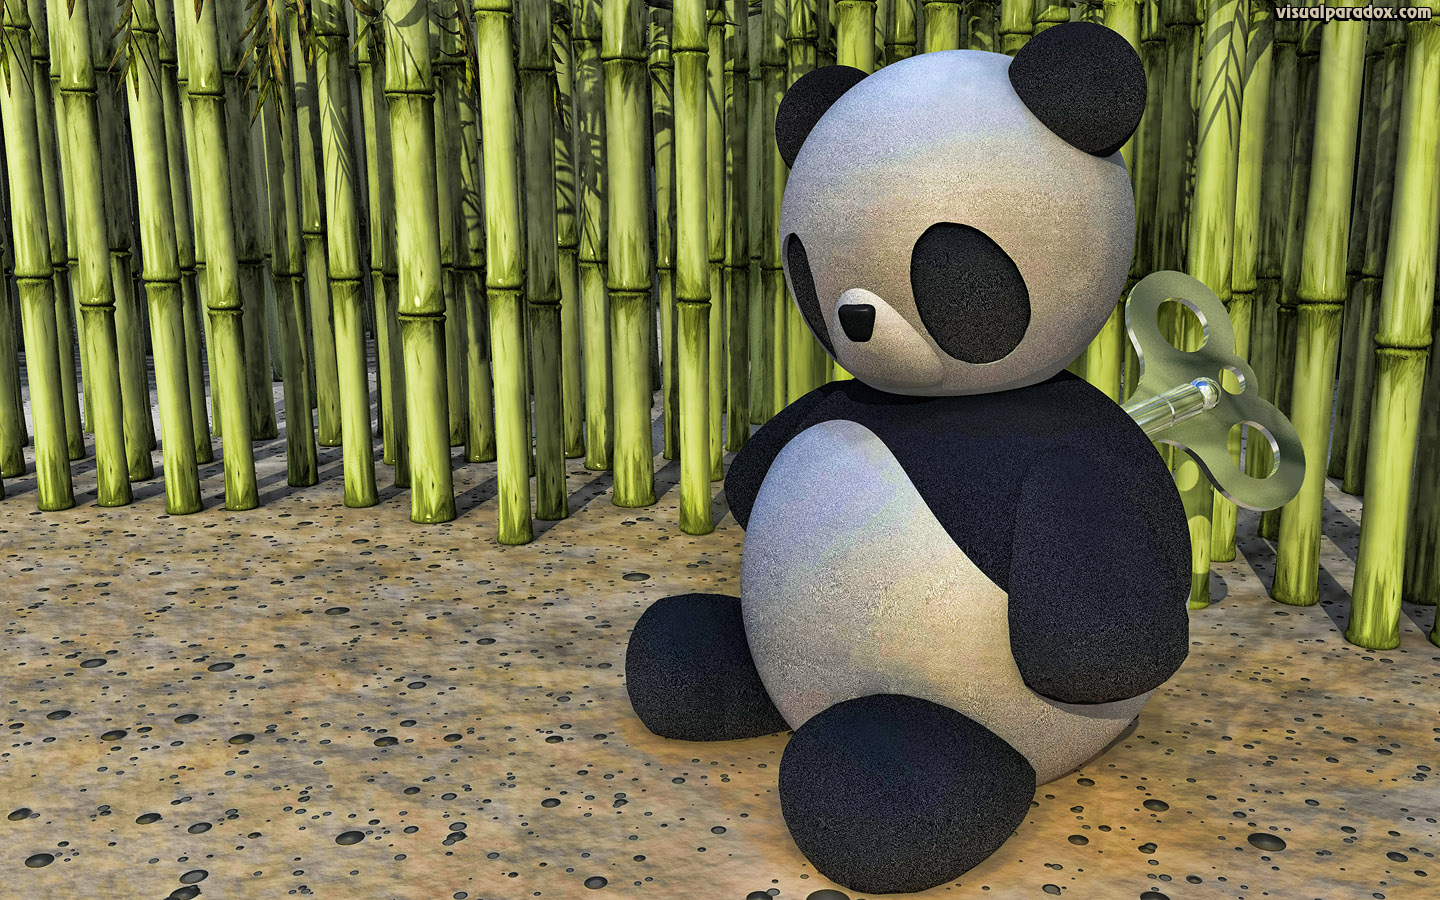 panda, clockwork, wind-up, key, china, winding, toy, doll, bamboo, cane, bear, wound, down, 3d, wallpaper, widescreen